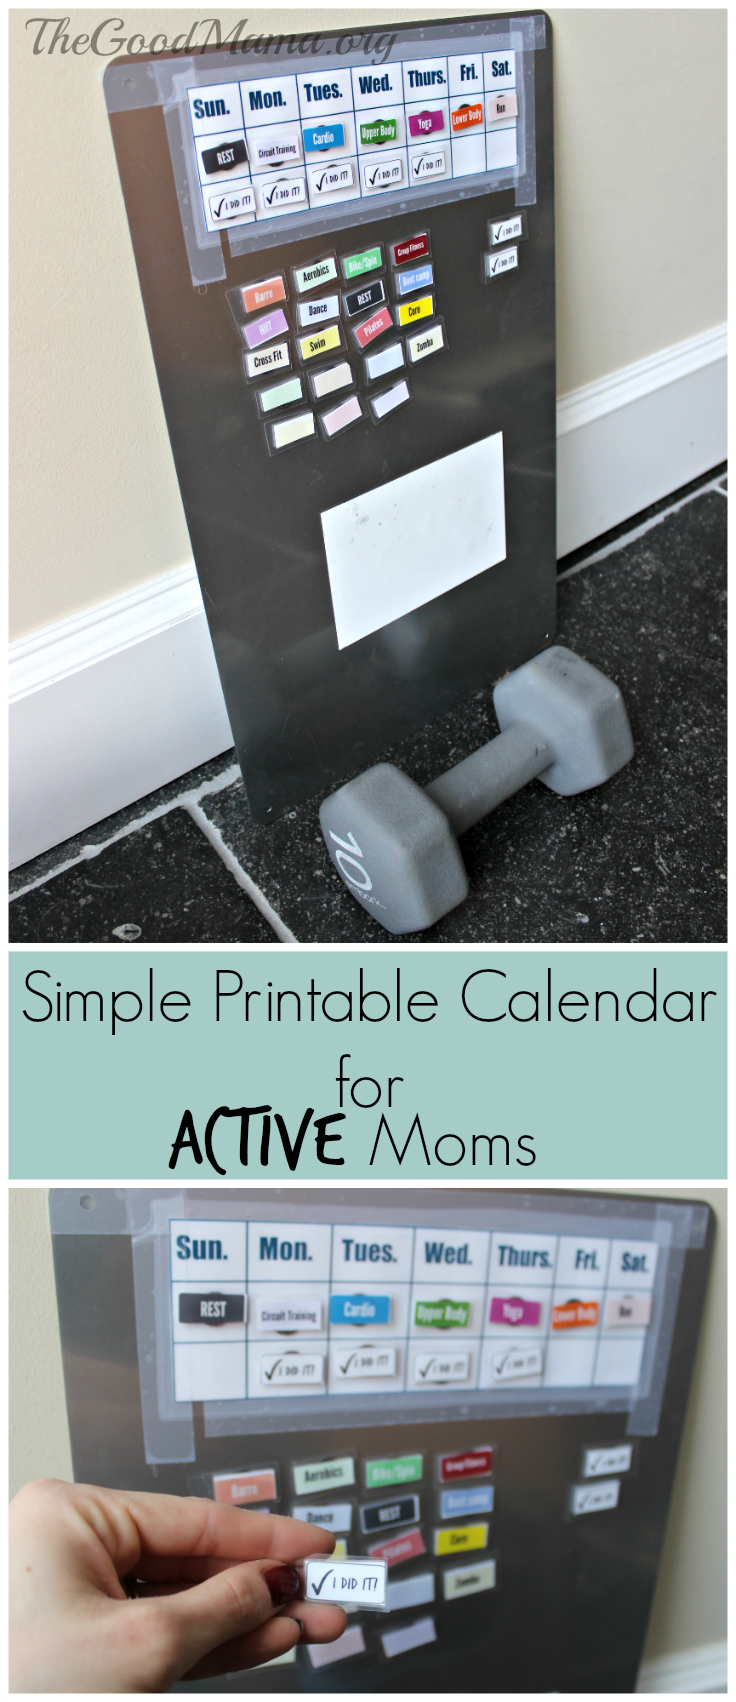 Simple Printable Calendar for Active Moms